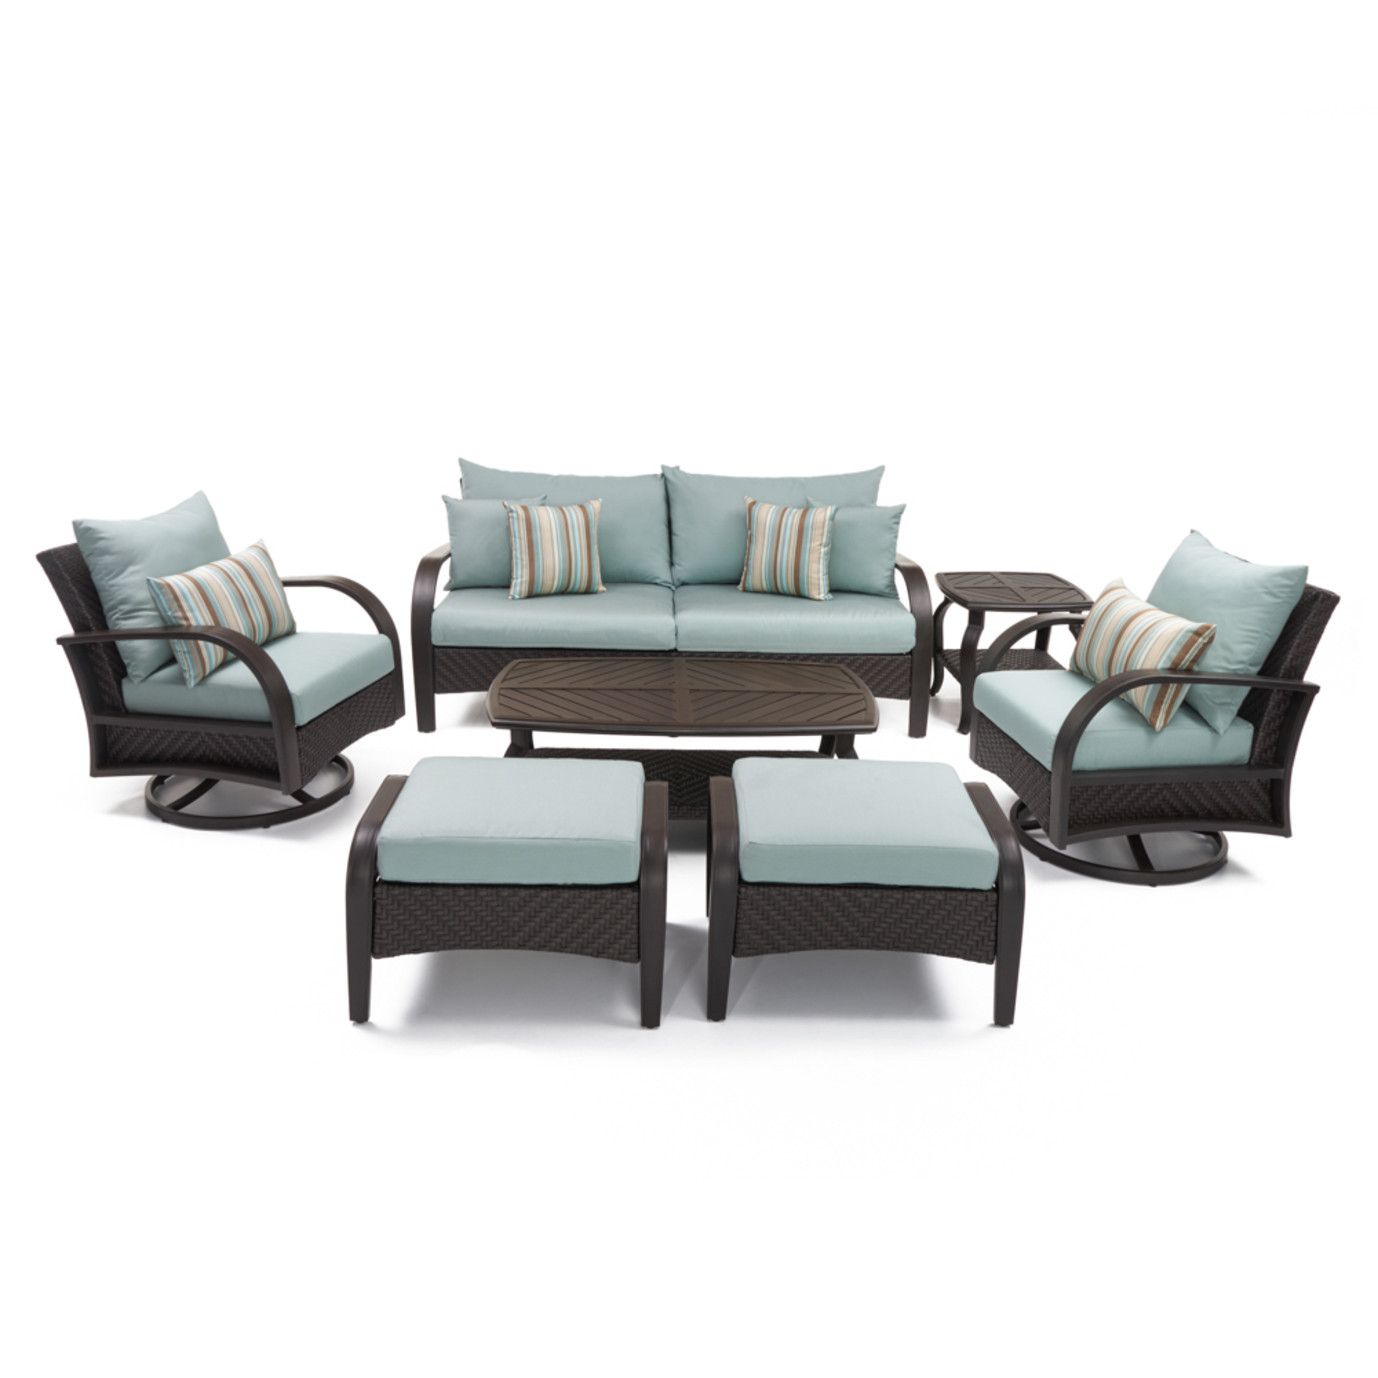 Barcelo™ 7pc Motion Club Deep Seating Set - Bliss Blue